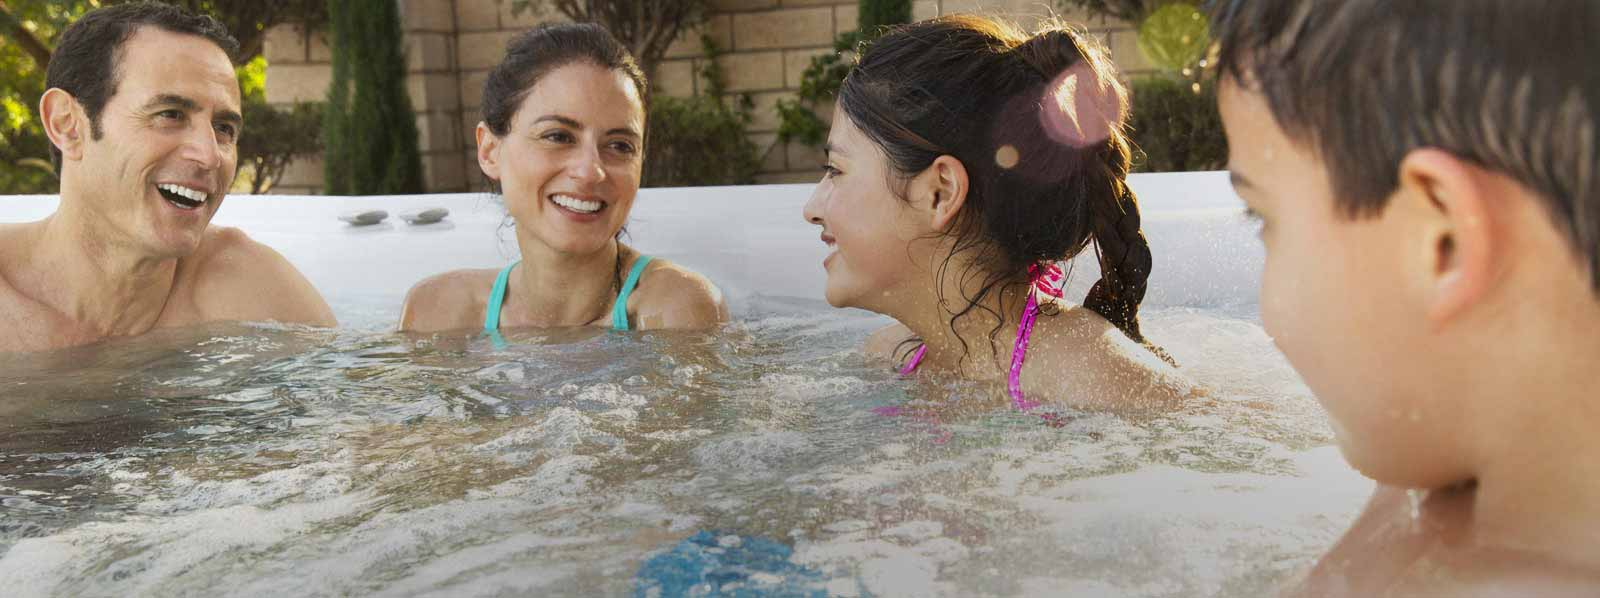 3 Ways a Backyard Spa Can Add to a Healthy Lifestyle – Hot Tub Sale St. Louis